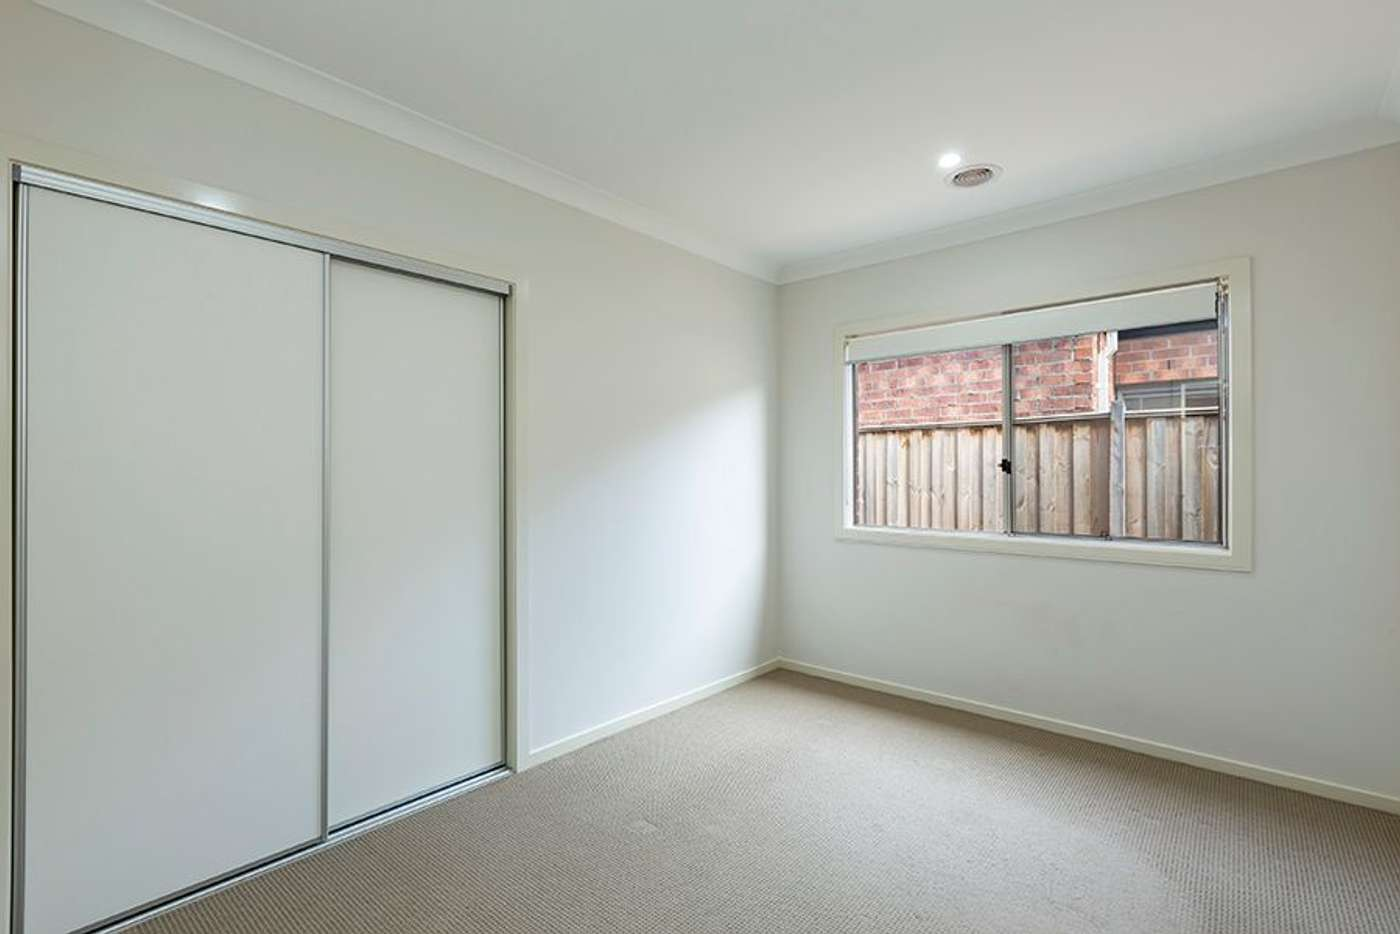 Sixth view of Homely house listing, 23 Gardener Drive, Point Cook VIC 3030